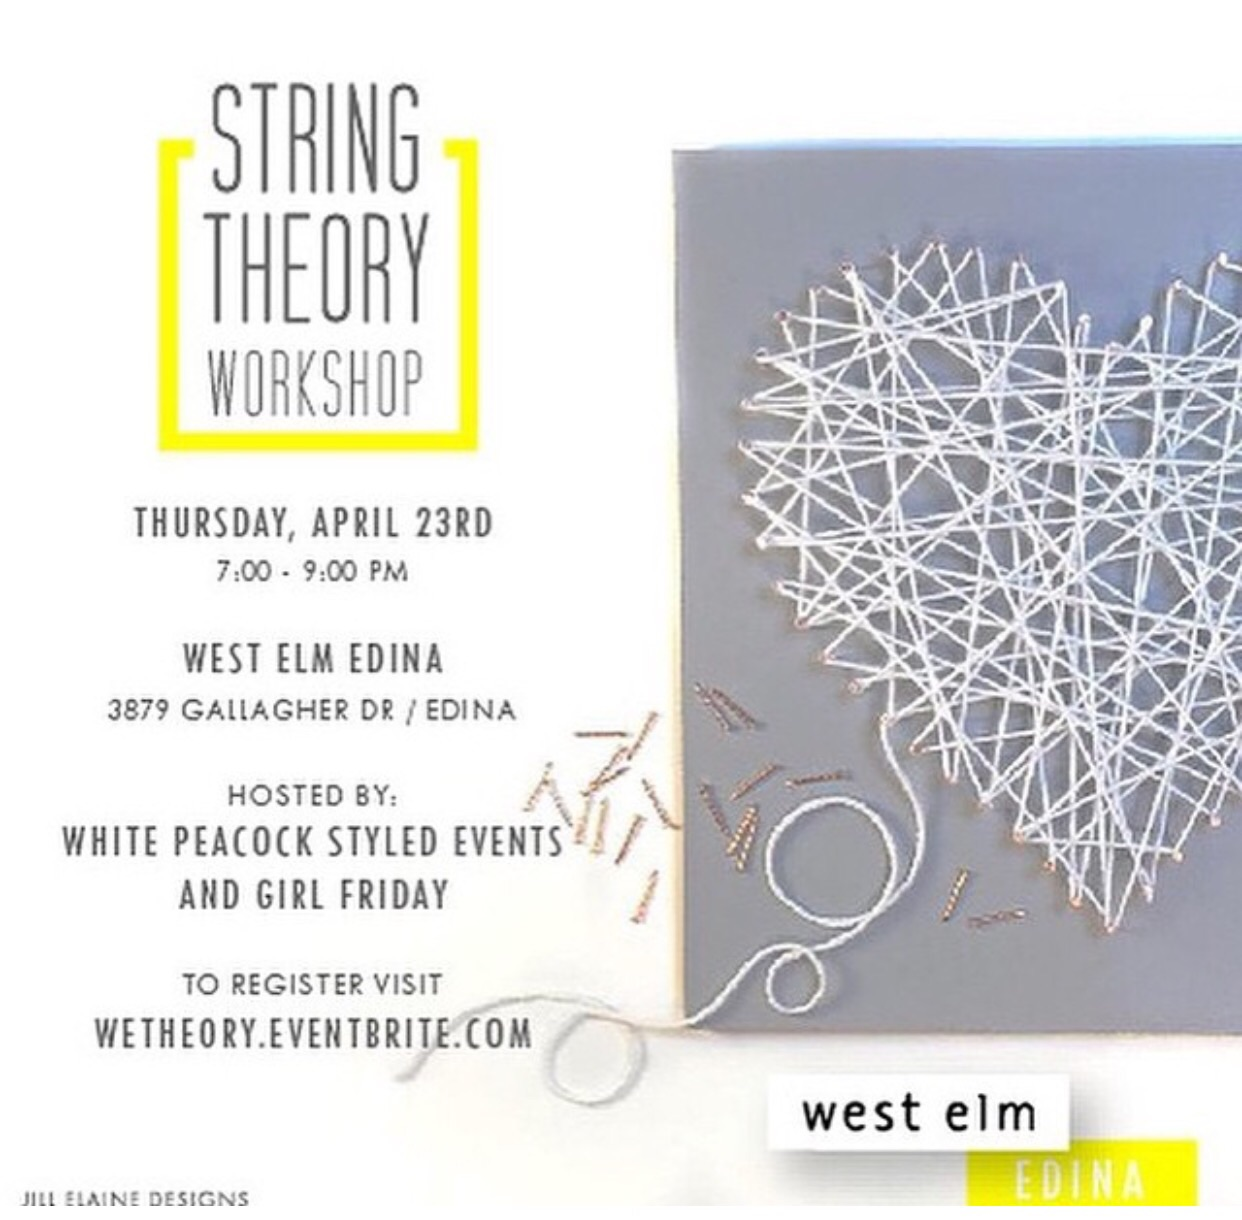 String Theory Workshop at West Elm Edina